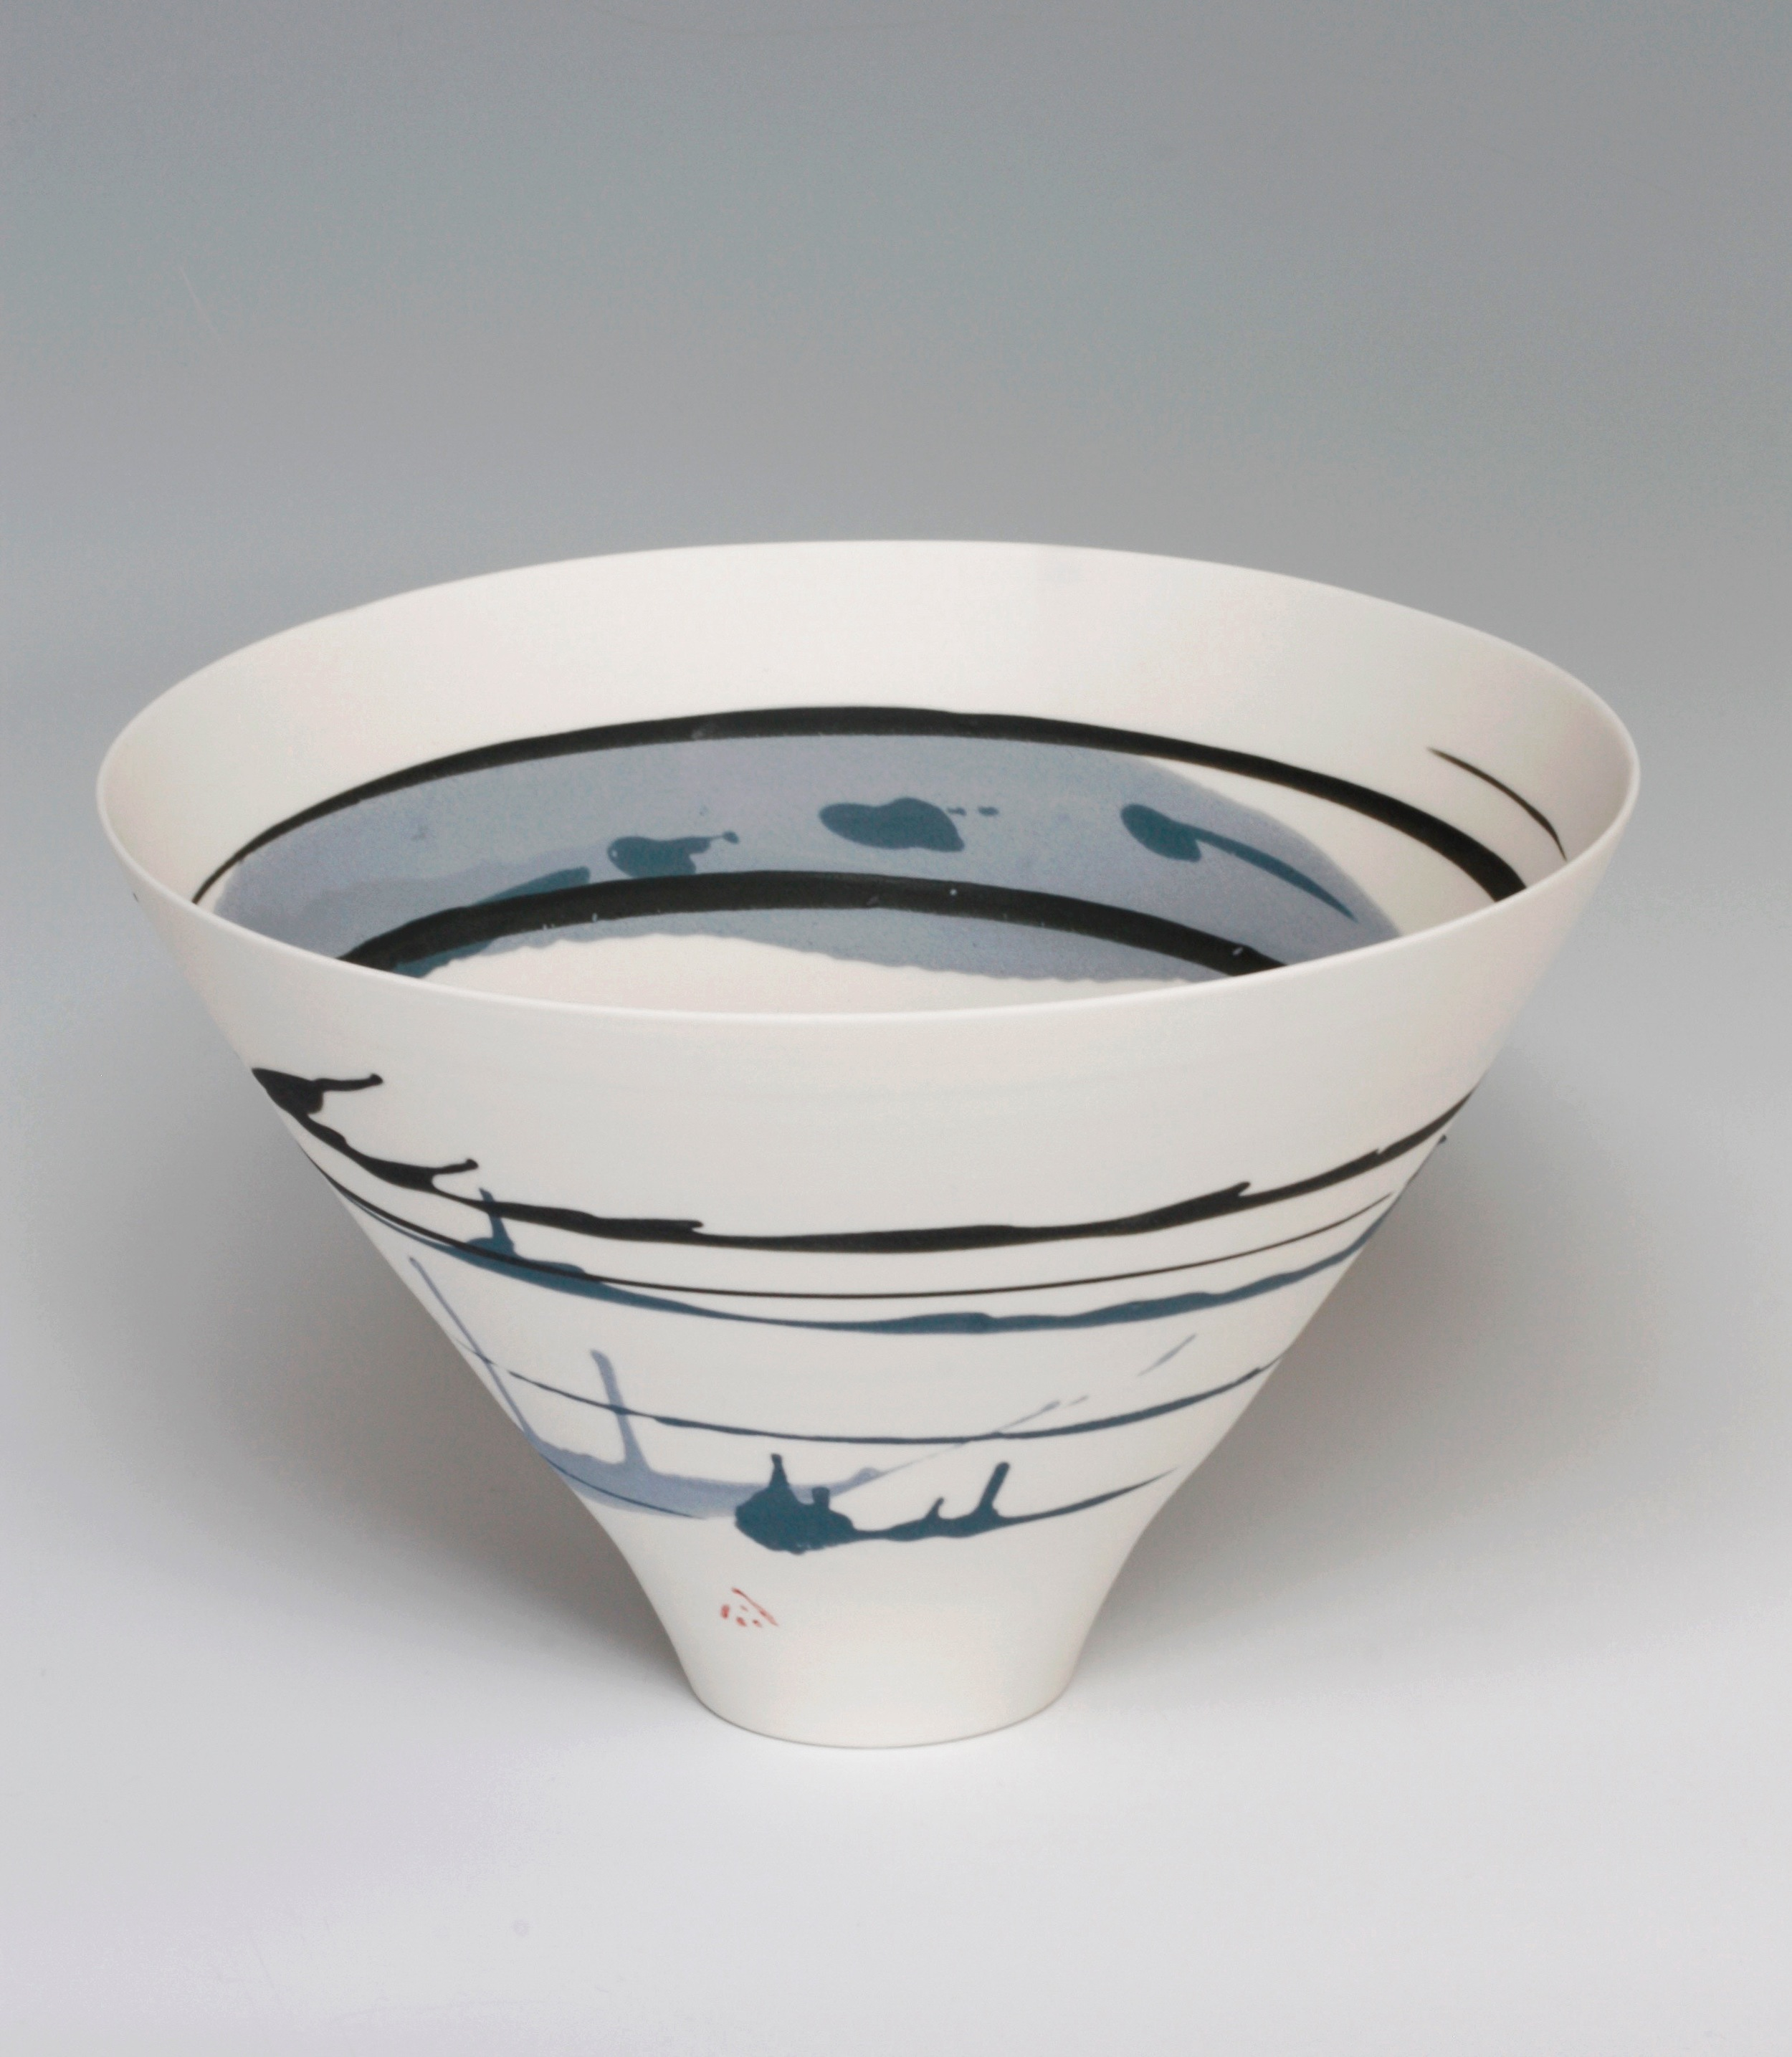 Ali Tomlin, Bowl with Blue Splashes, Thrown Porcelain, H 22cm. Courtesy of Ceramic Art London..jpg